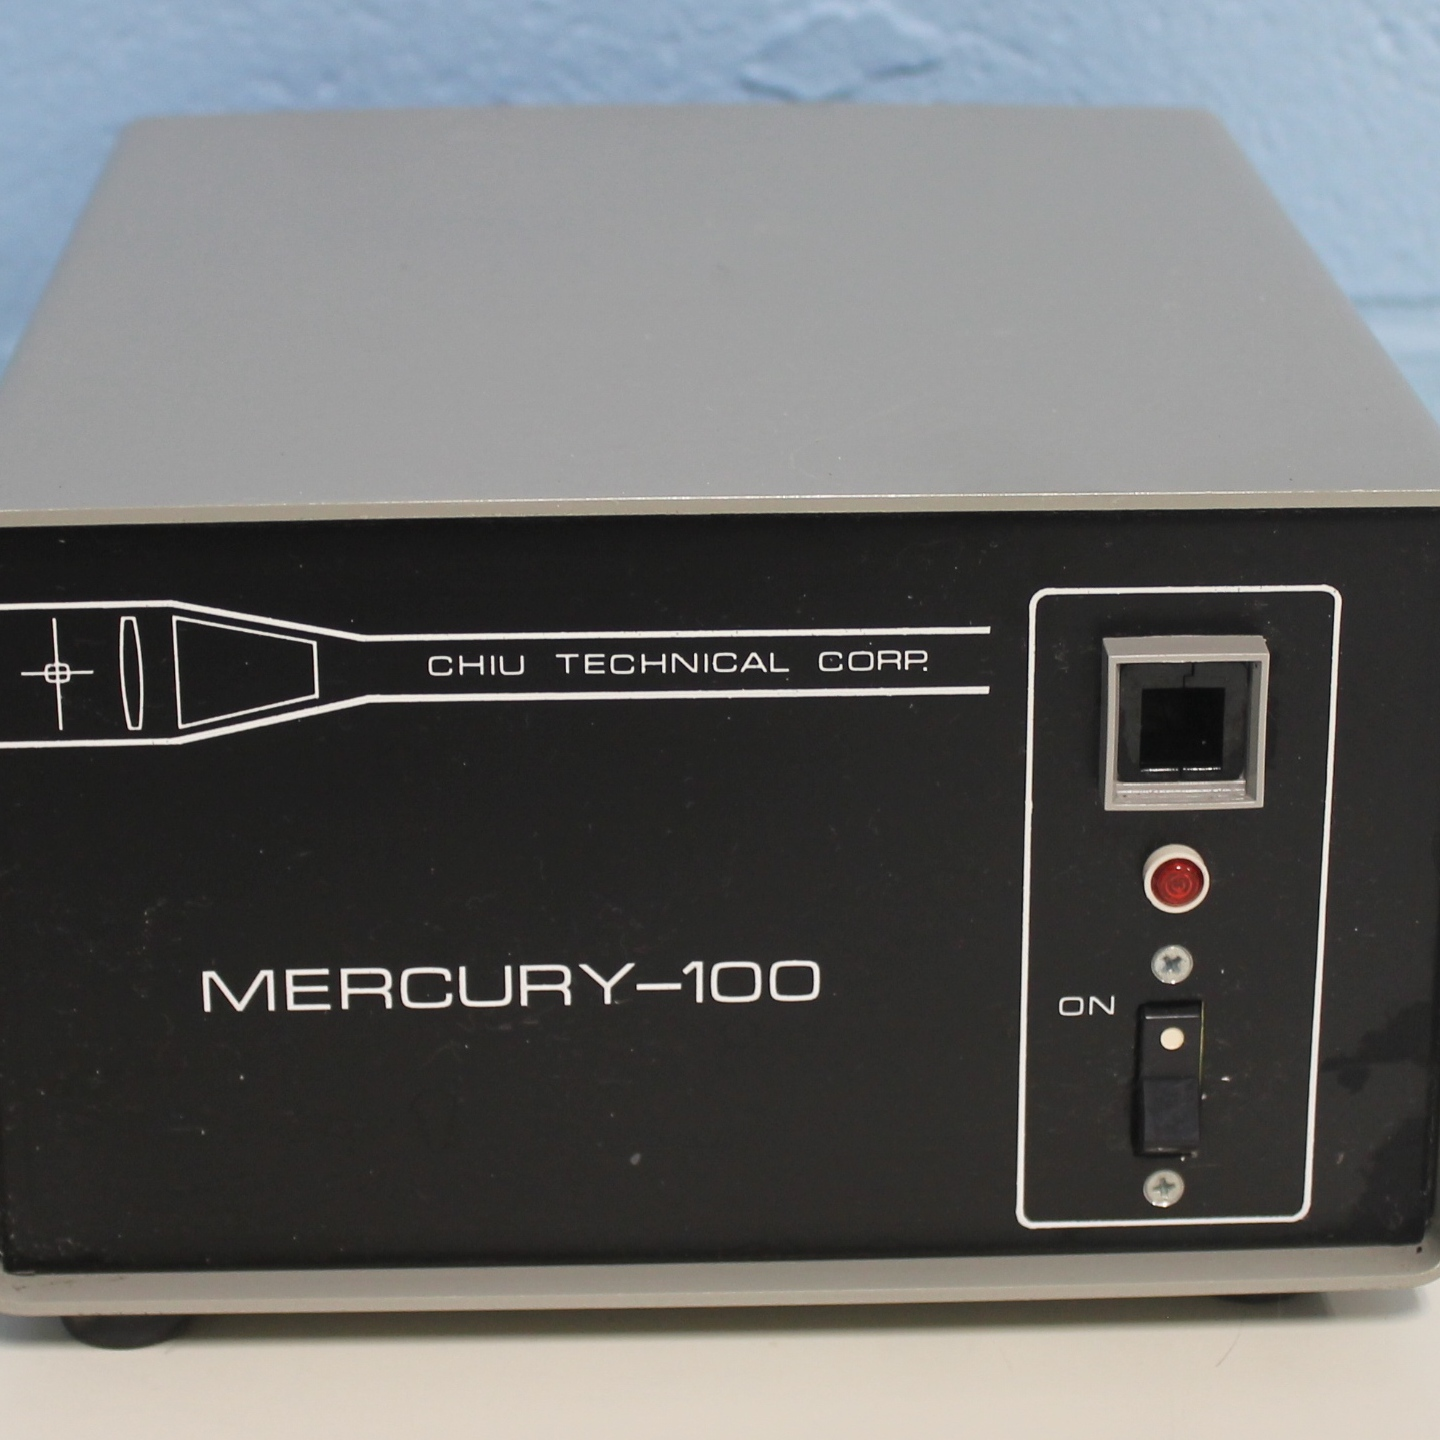 Chiu Technical Corp MERCURY-100 Power Supply Image